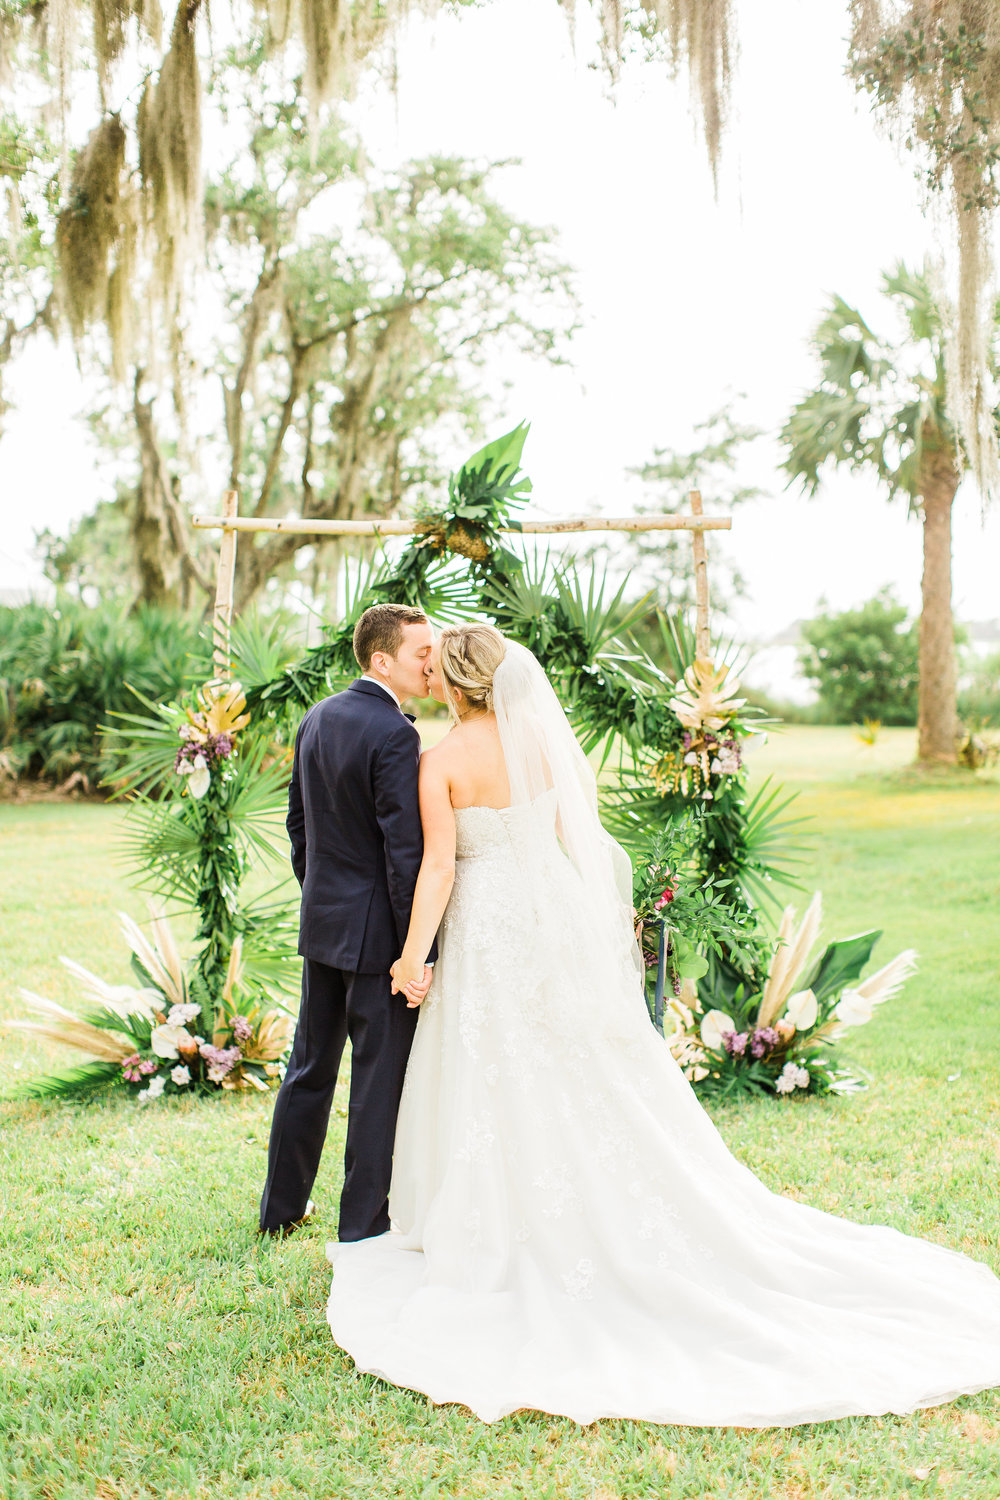 savannah-bridal-shop-i-and-b-couple-gretchen-and-alex-fun-and-unique-tropical-wedding-at-captains-bluff-st-simons-island-wedding-marianne-lucille-photography-26.jpg